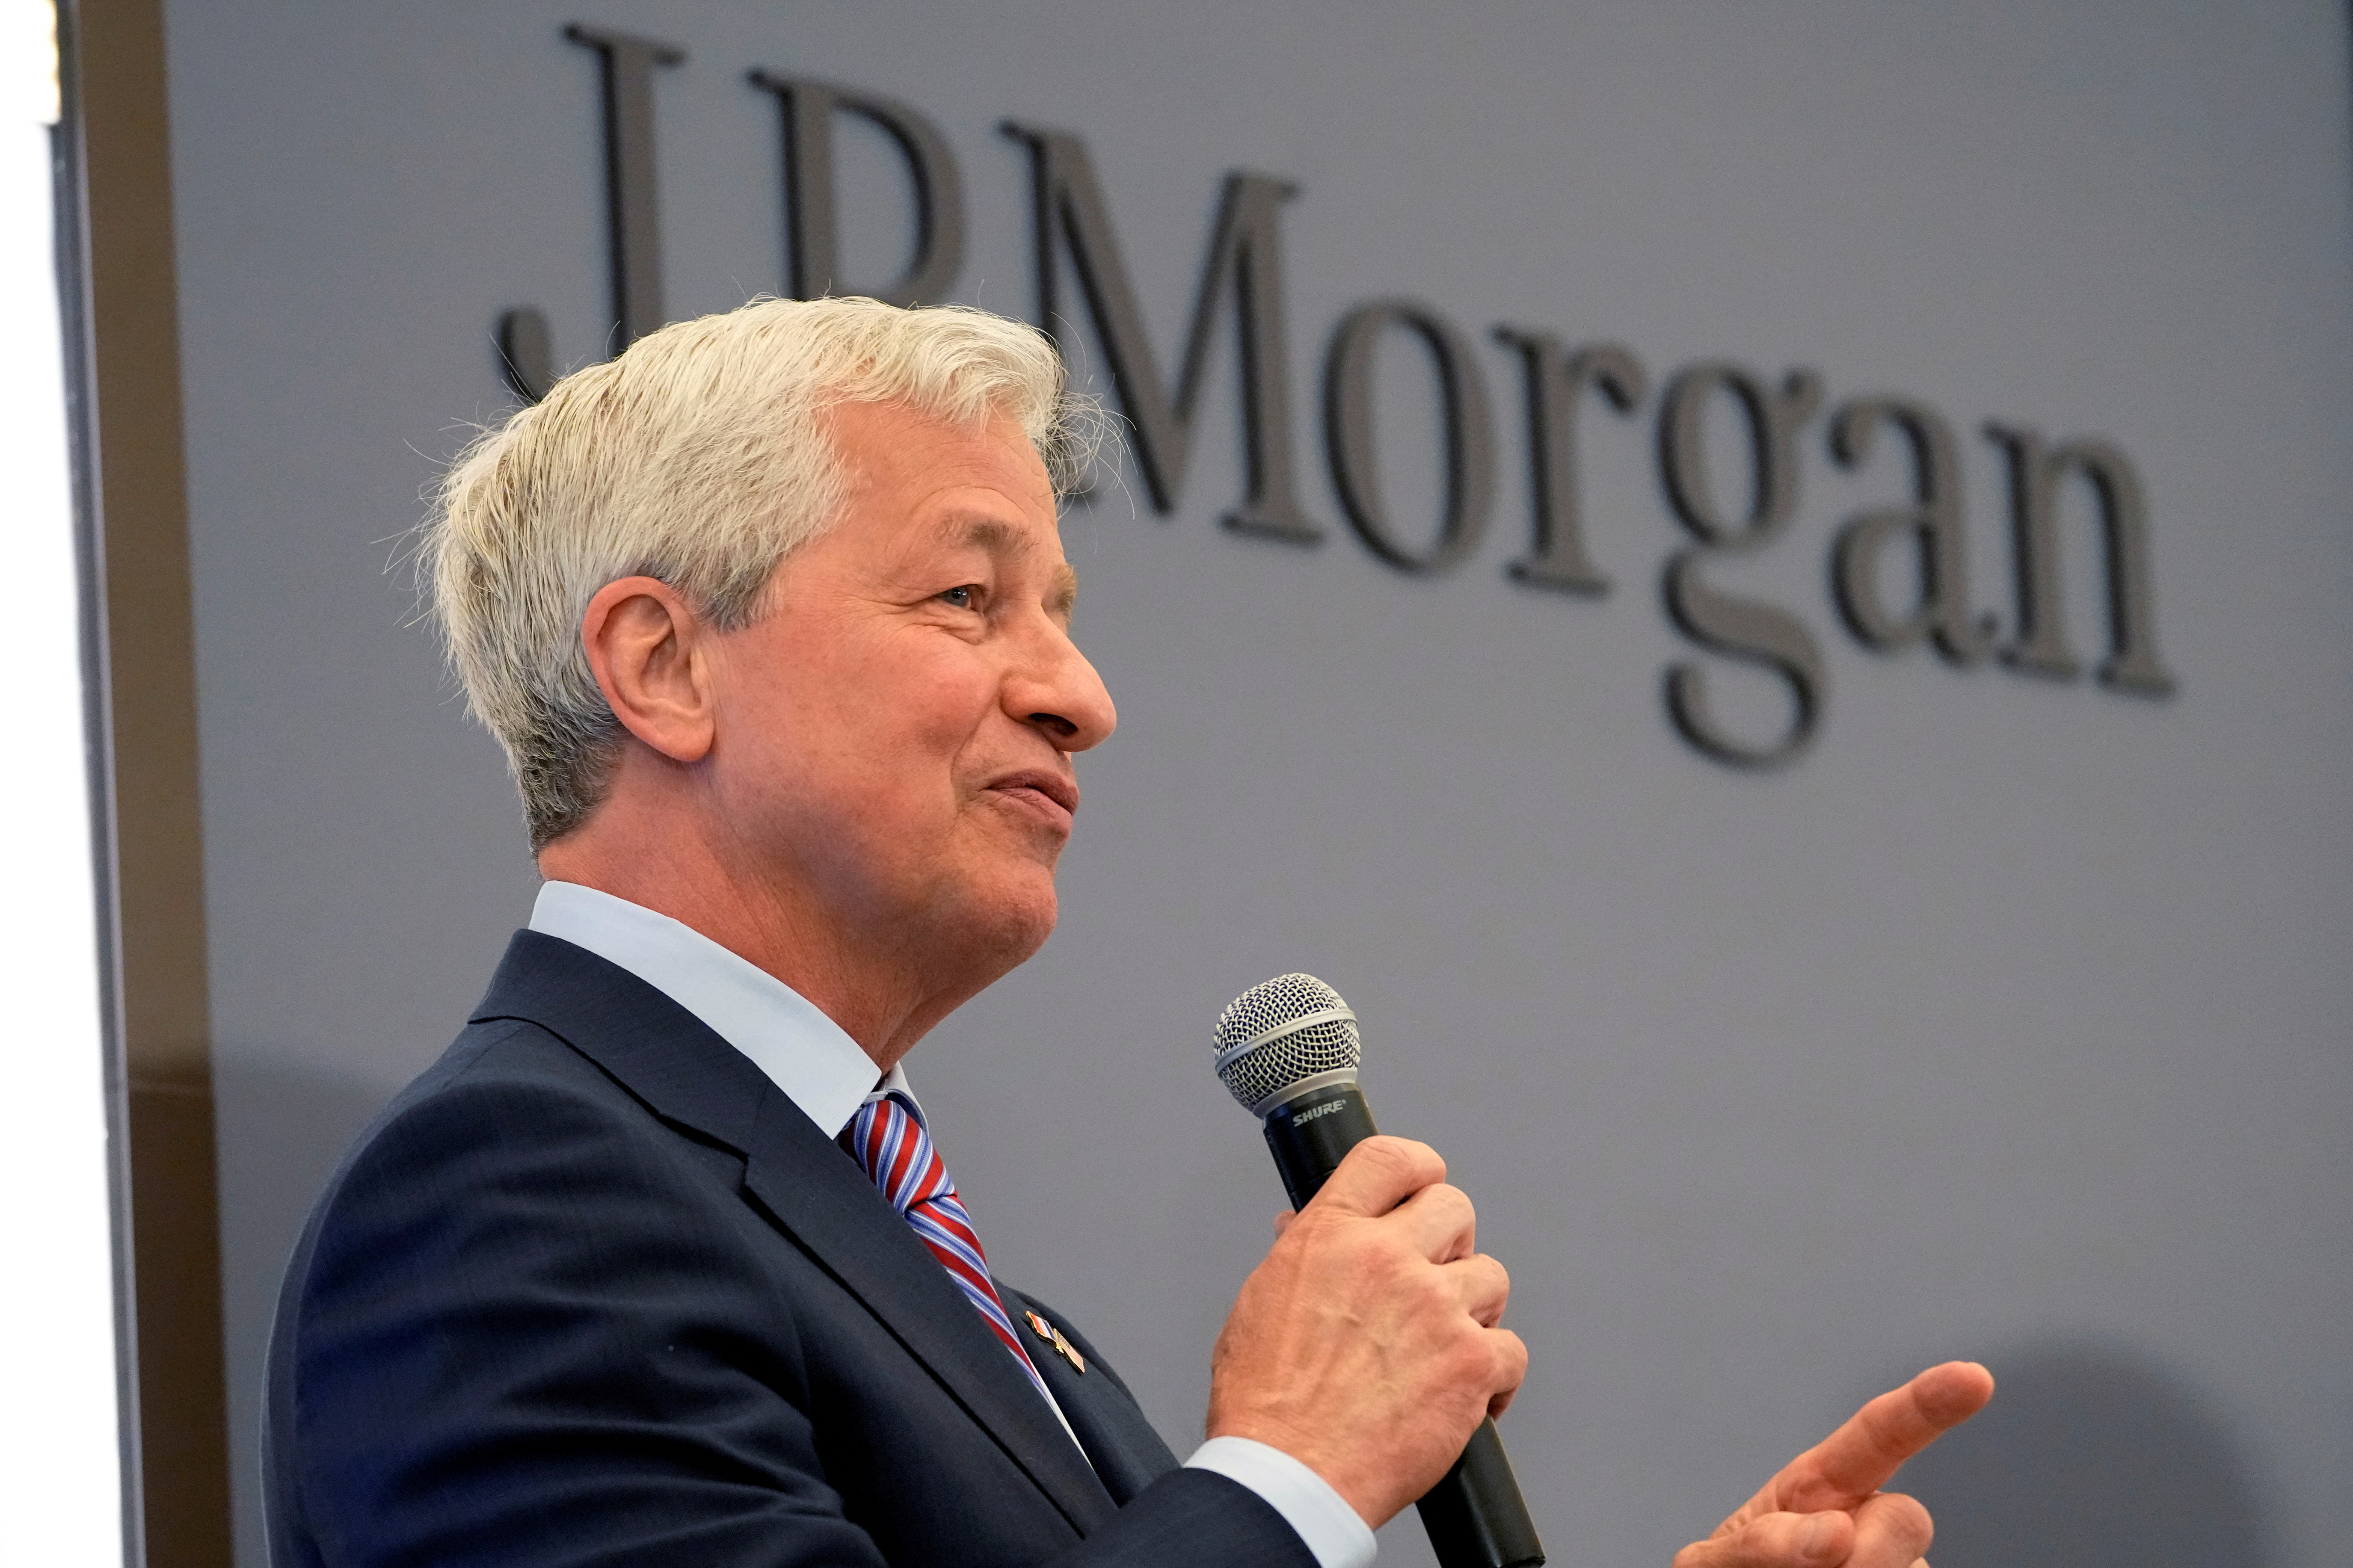 JP Morgan CEO Jamie Dimon delivers a speech during the inauguration the new French headquarters of JP Morgan bank in Paris, France June 29, 2021.  Michel Euler/Pool via REUTERS